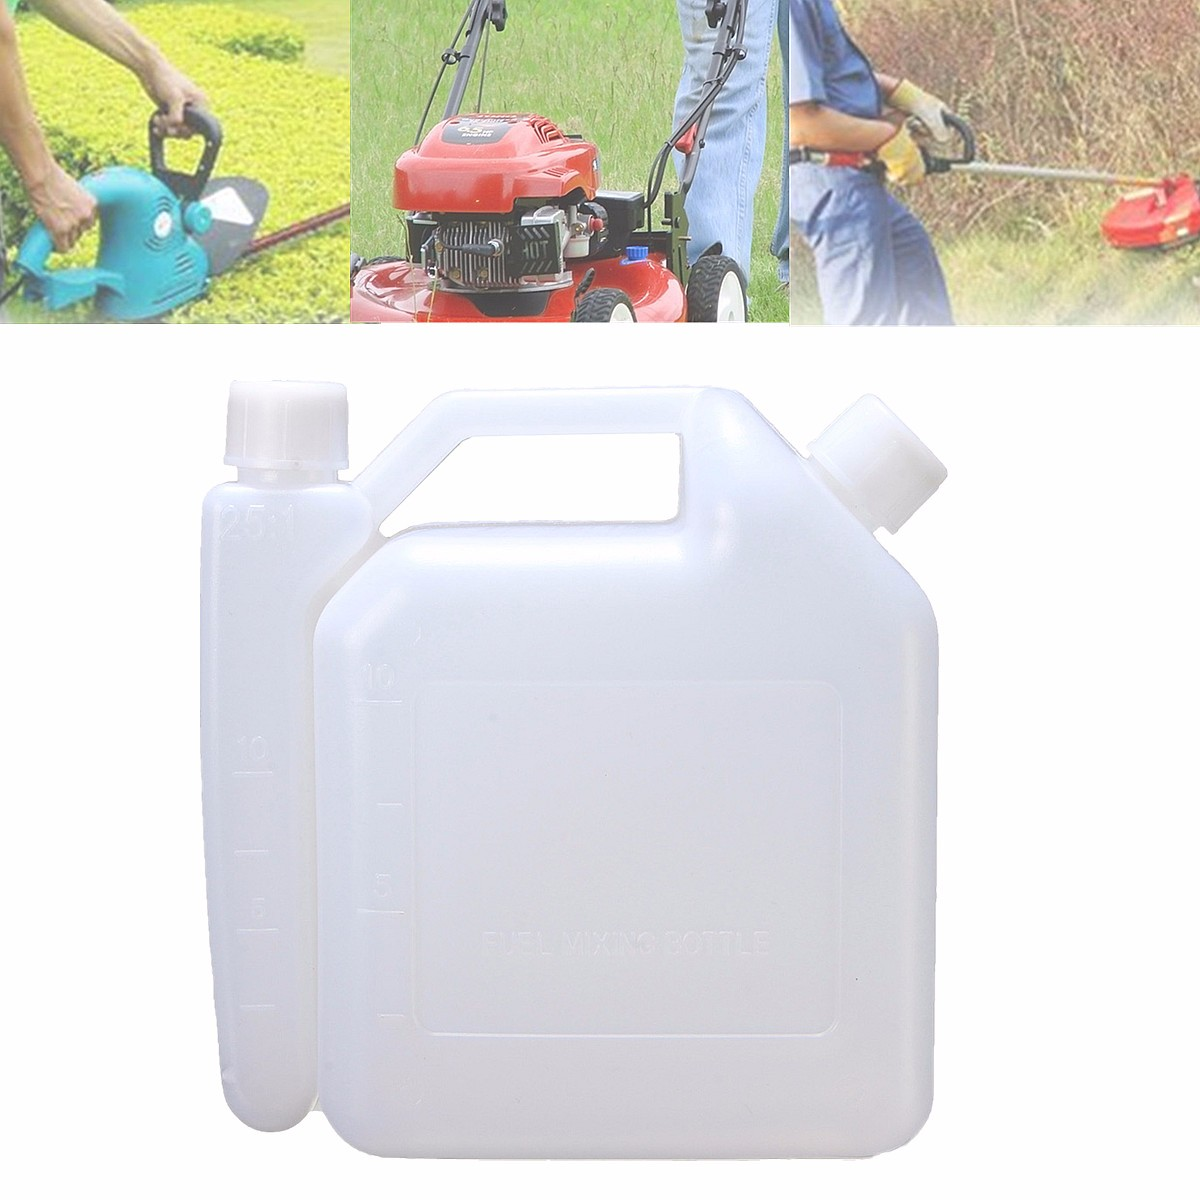 1 Litre Oil Petrol Fuel Mixing Bottle Tank 2 Stroke For Chainsaw Trimmers 1:25 Plastic Fuel Tanks 15.5x7.3x16.3cm White